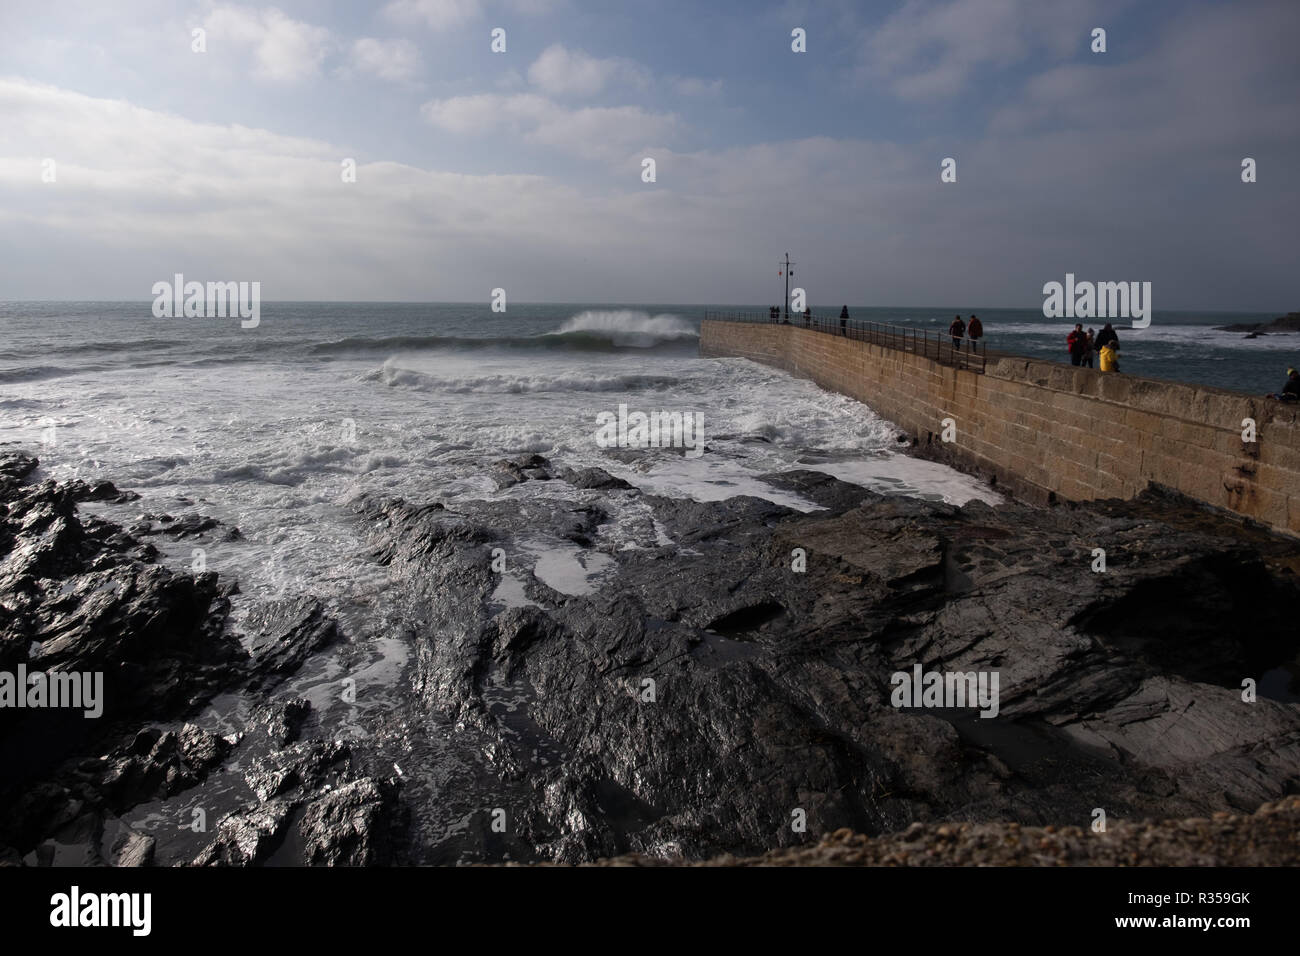 Wide angled view of people on the harbour wall watching the amazing waves powering in to break on the rocky shore of Porthleven, Cornwall. - Stock Image